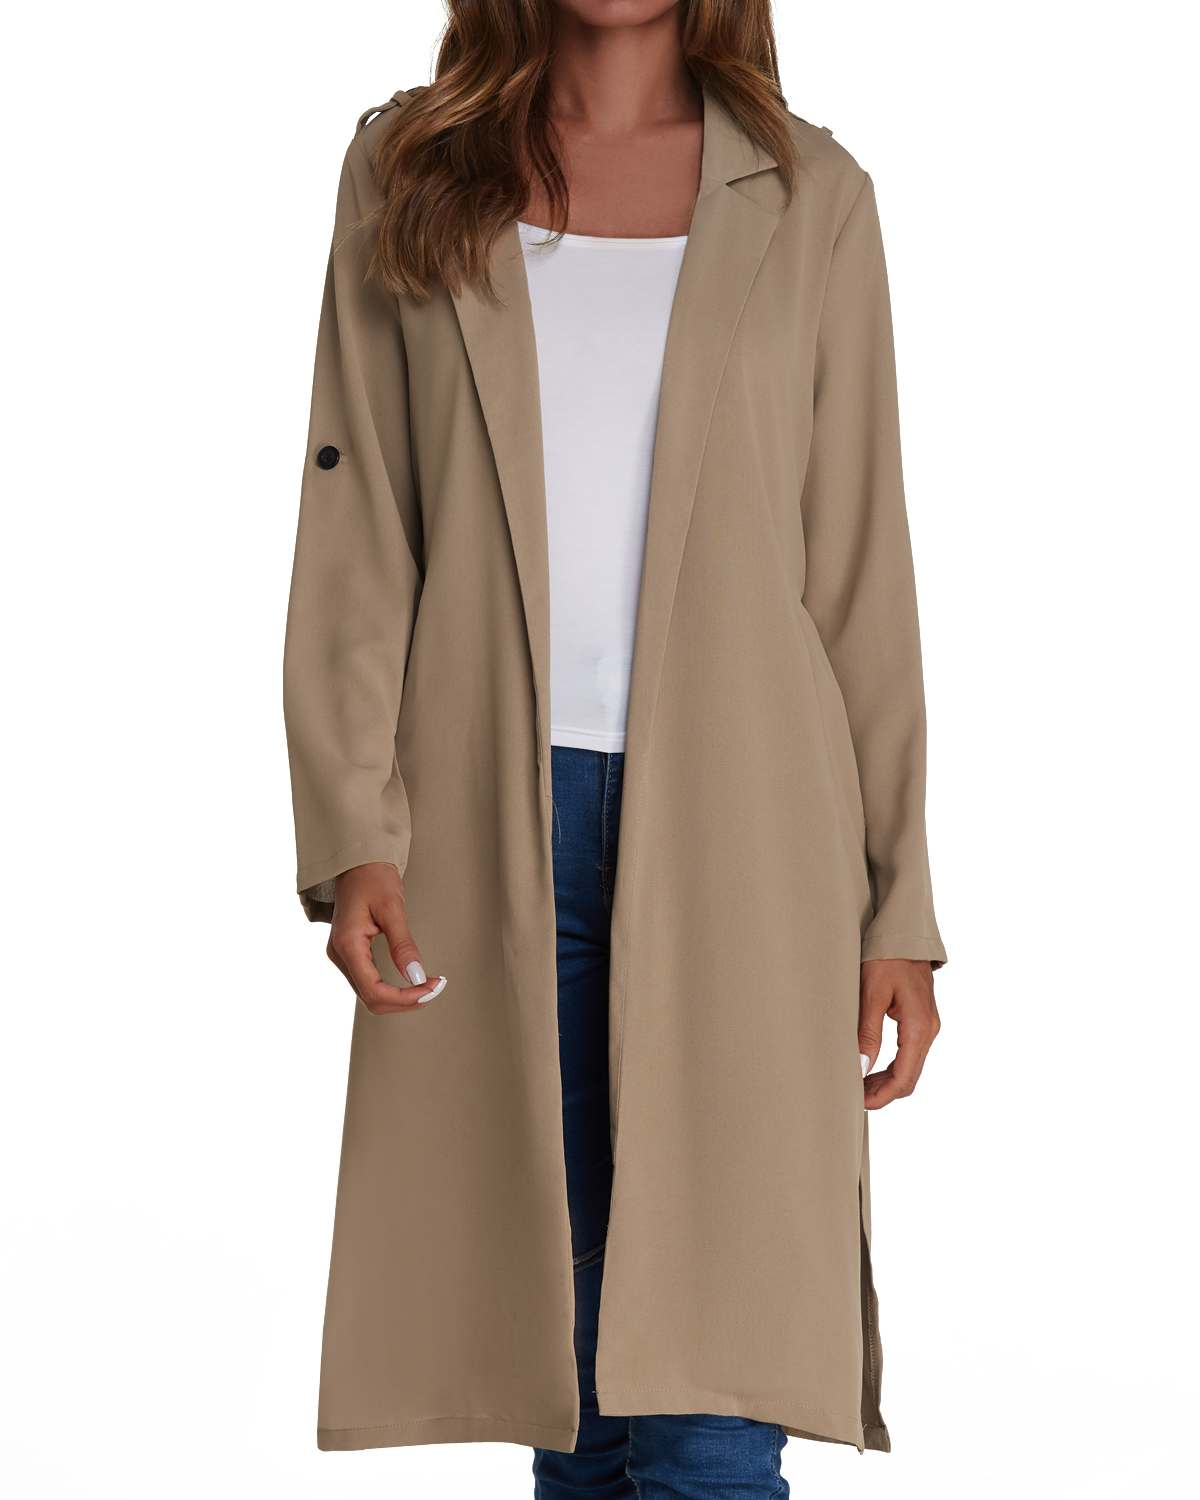 Solid Coats Women 2019 ZANZEA Spring Autumn Full Sleeve Outerwear Long Trench Coat Casual Loose Coat Cardigan Overcoat